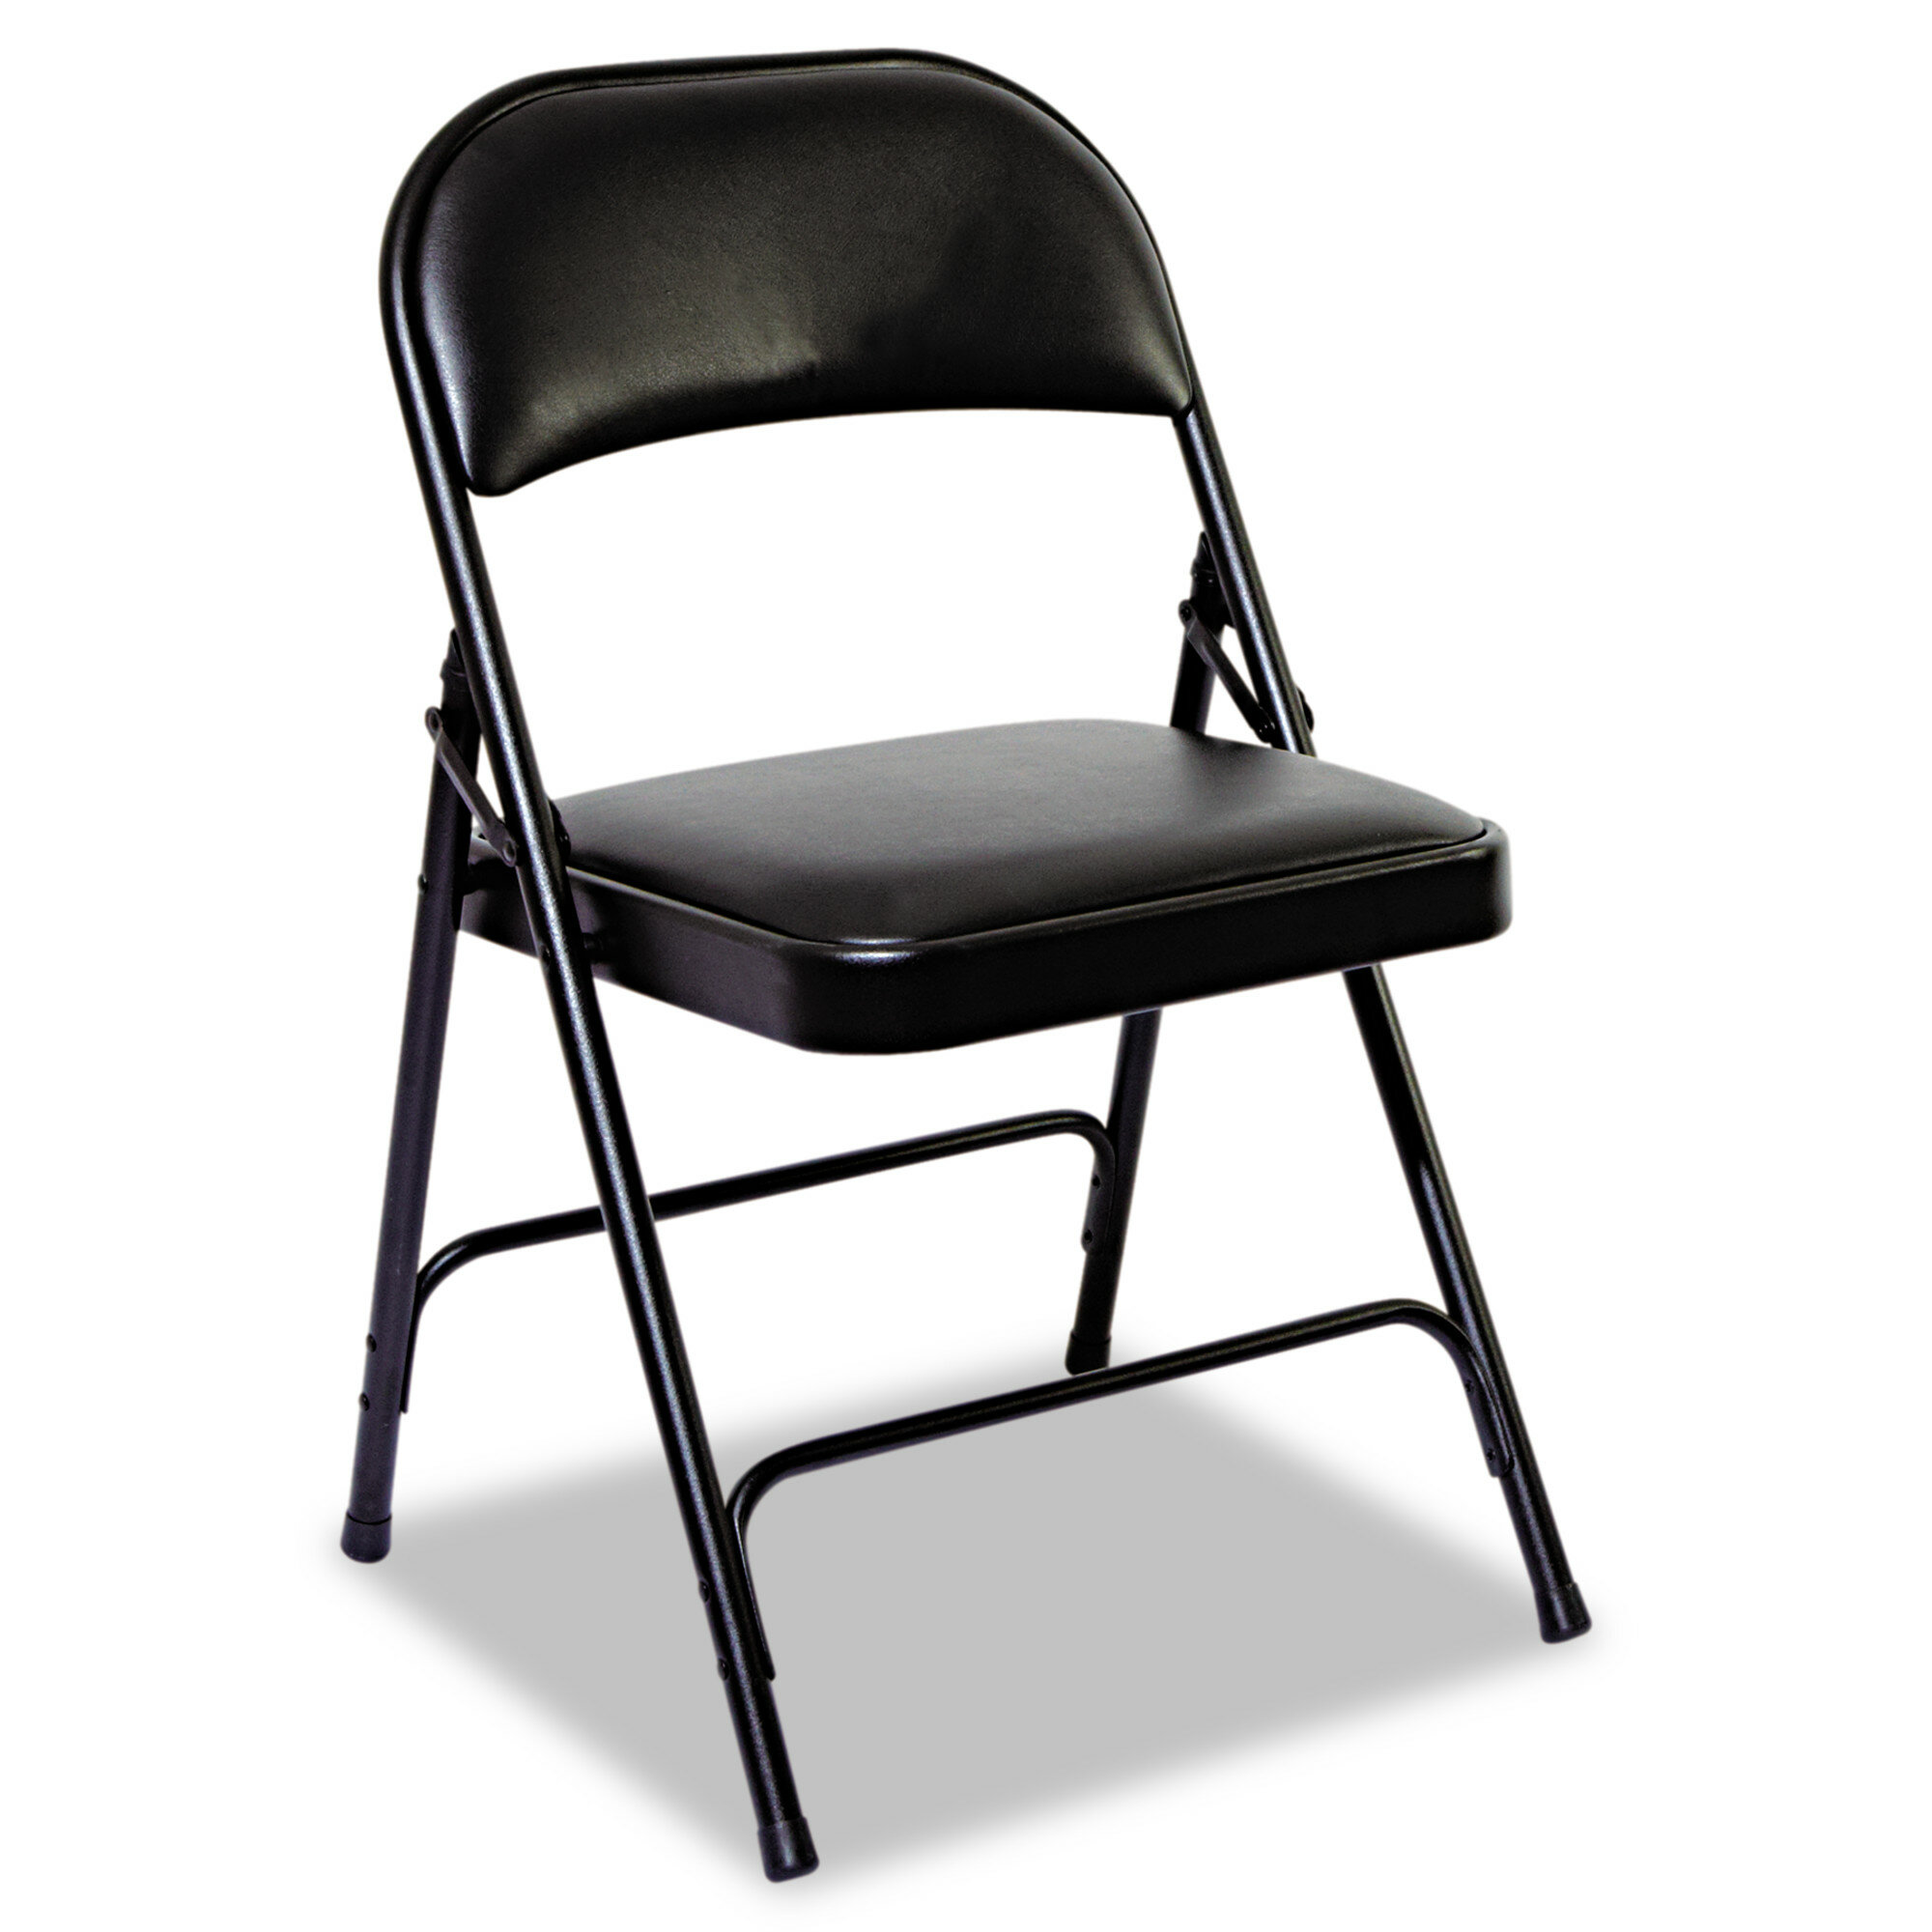 Incredible Fabric Vinyl Padded Folding Chair Pabps2019 Chair Design Images Pabps2019Com